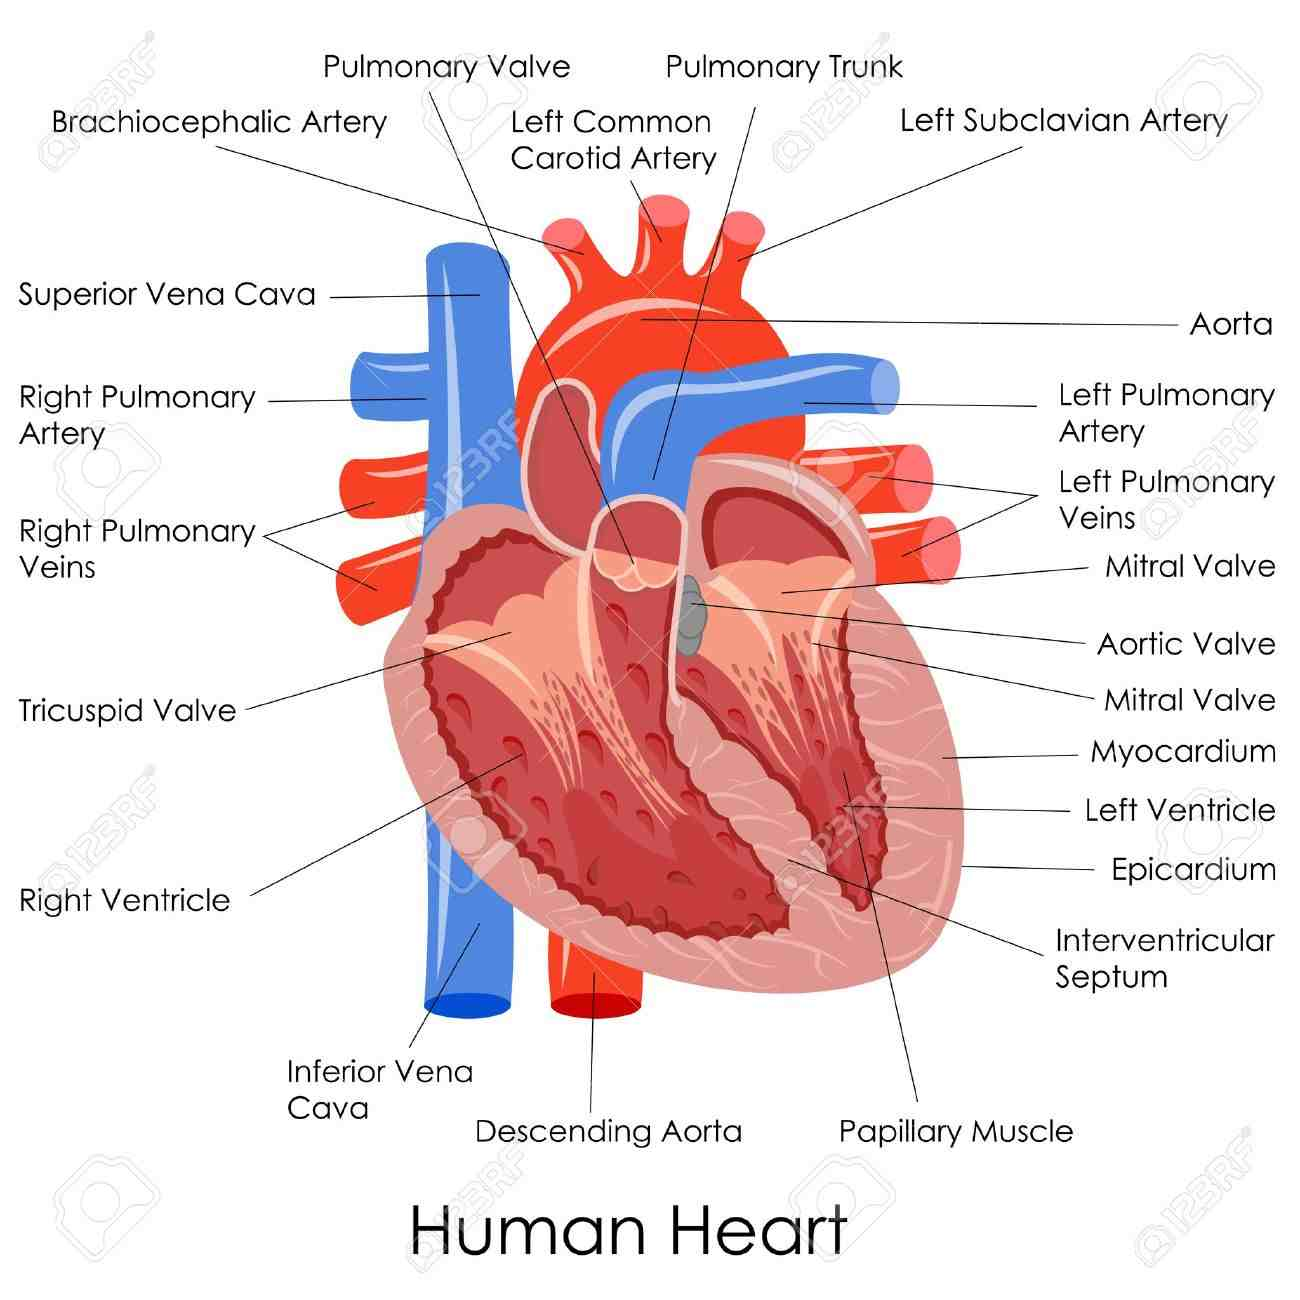 human heart anatomy diagram - coordstudenti, Human Body